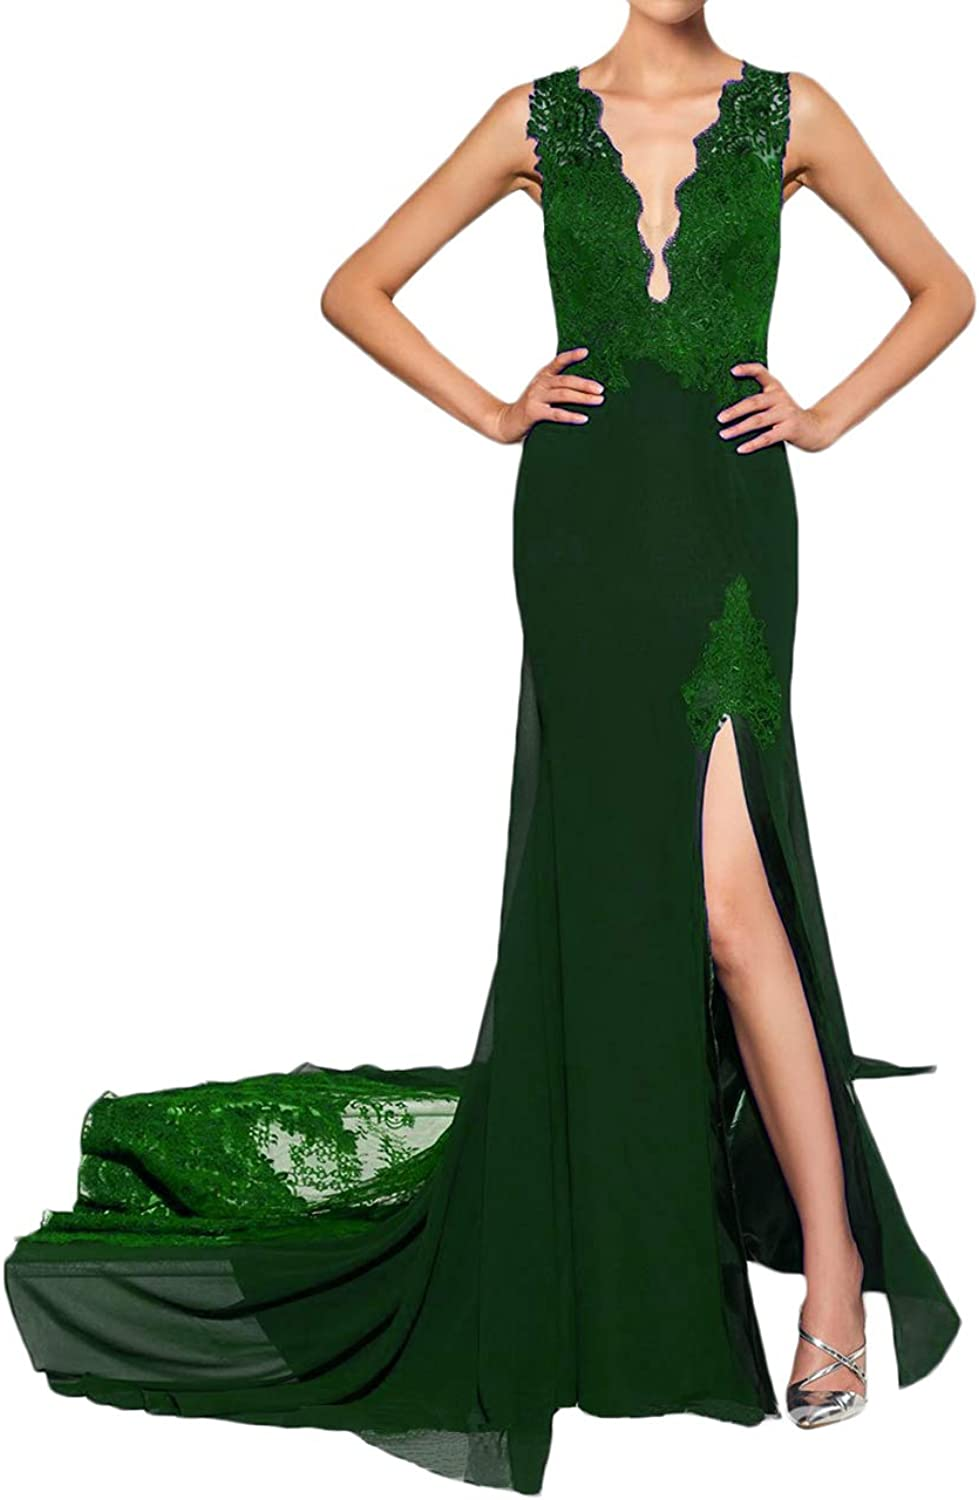 Alilith.Z Sexy Plunging V Neck Prom Dresses 2019 Mermaid Appliques Lace Long Formal Evening Dresses for Women with Slit